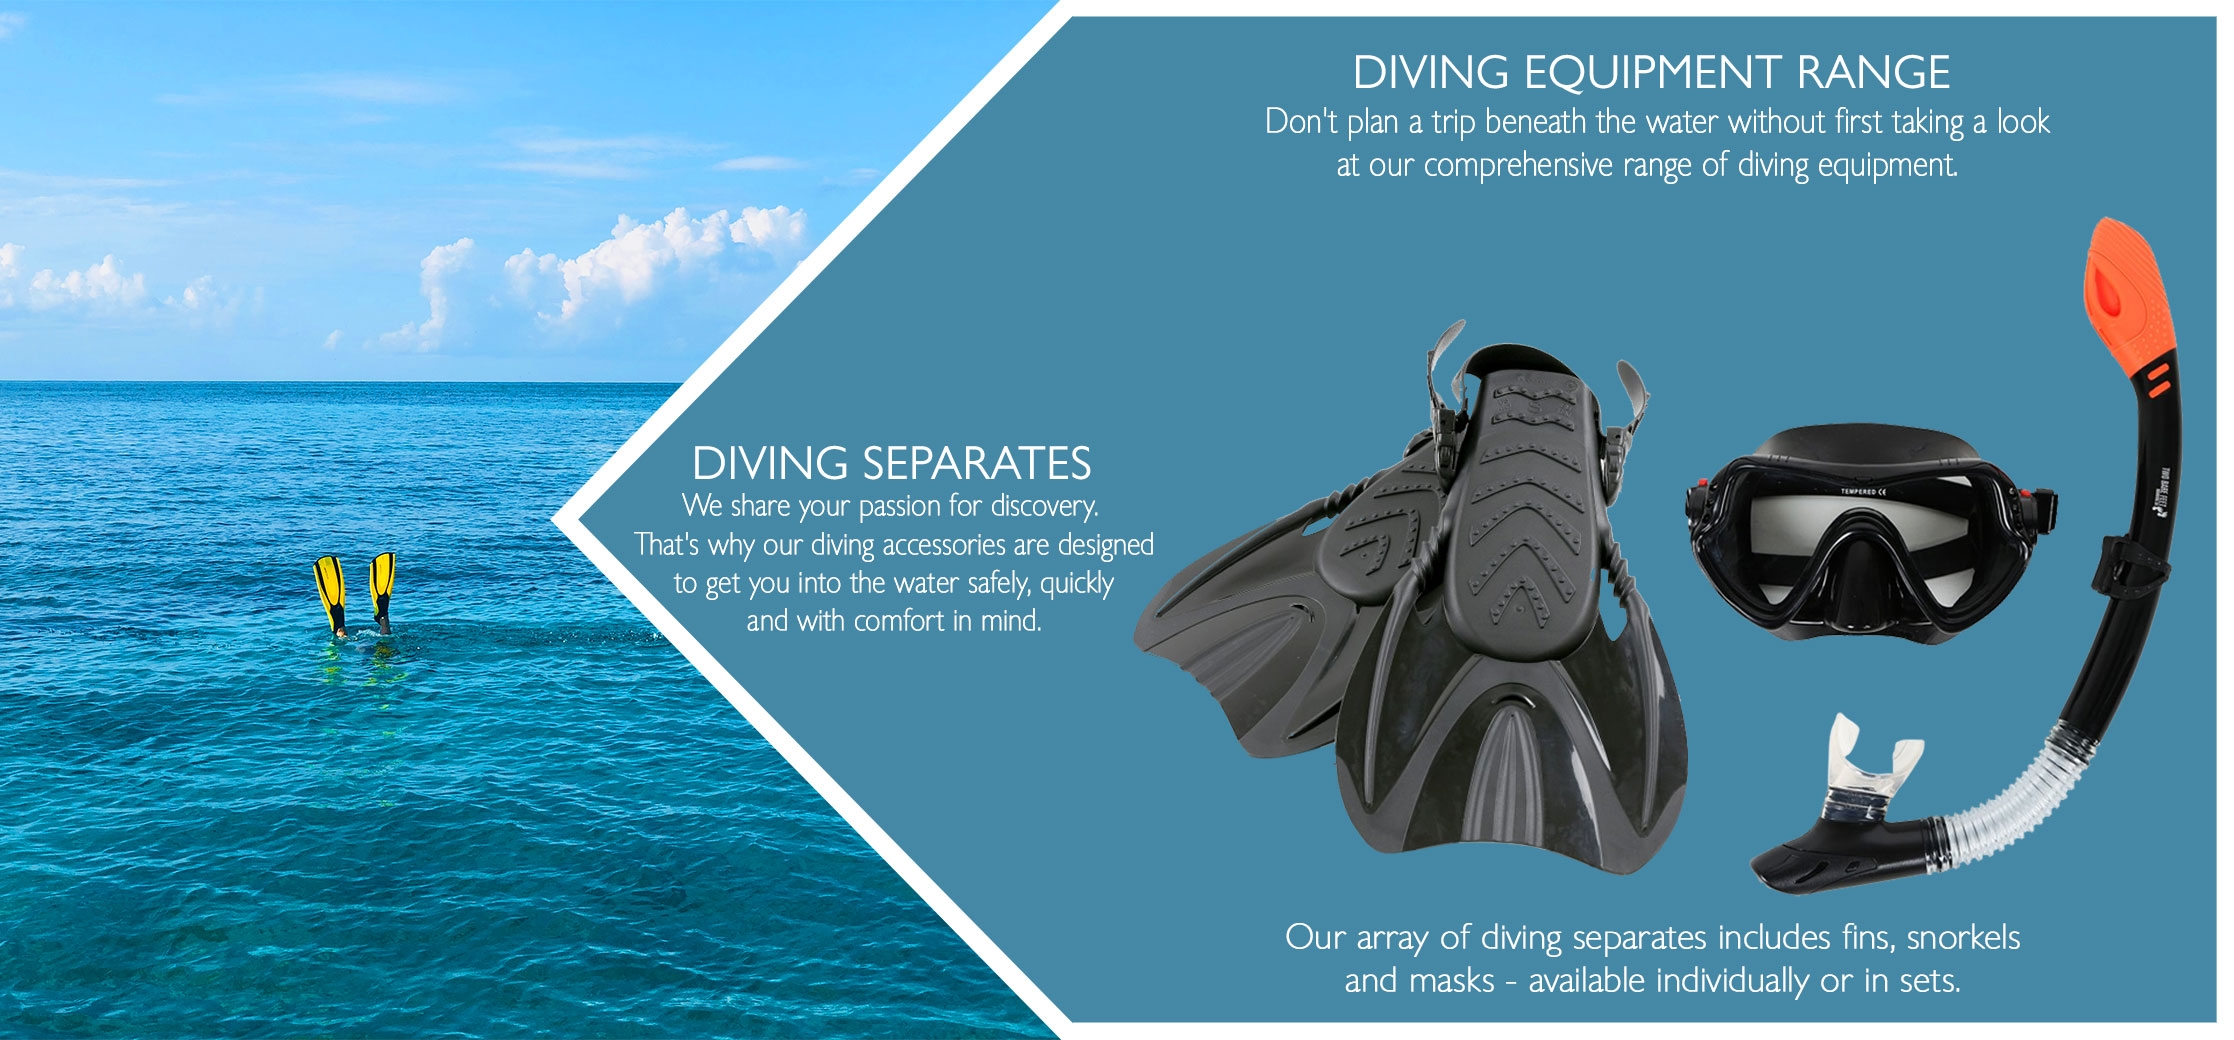 Diving separates masks snorkels fins